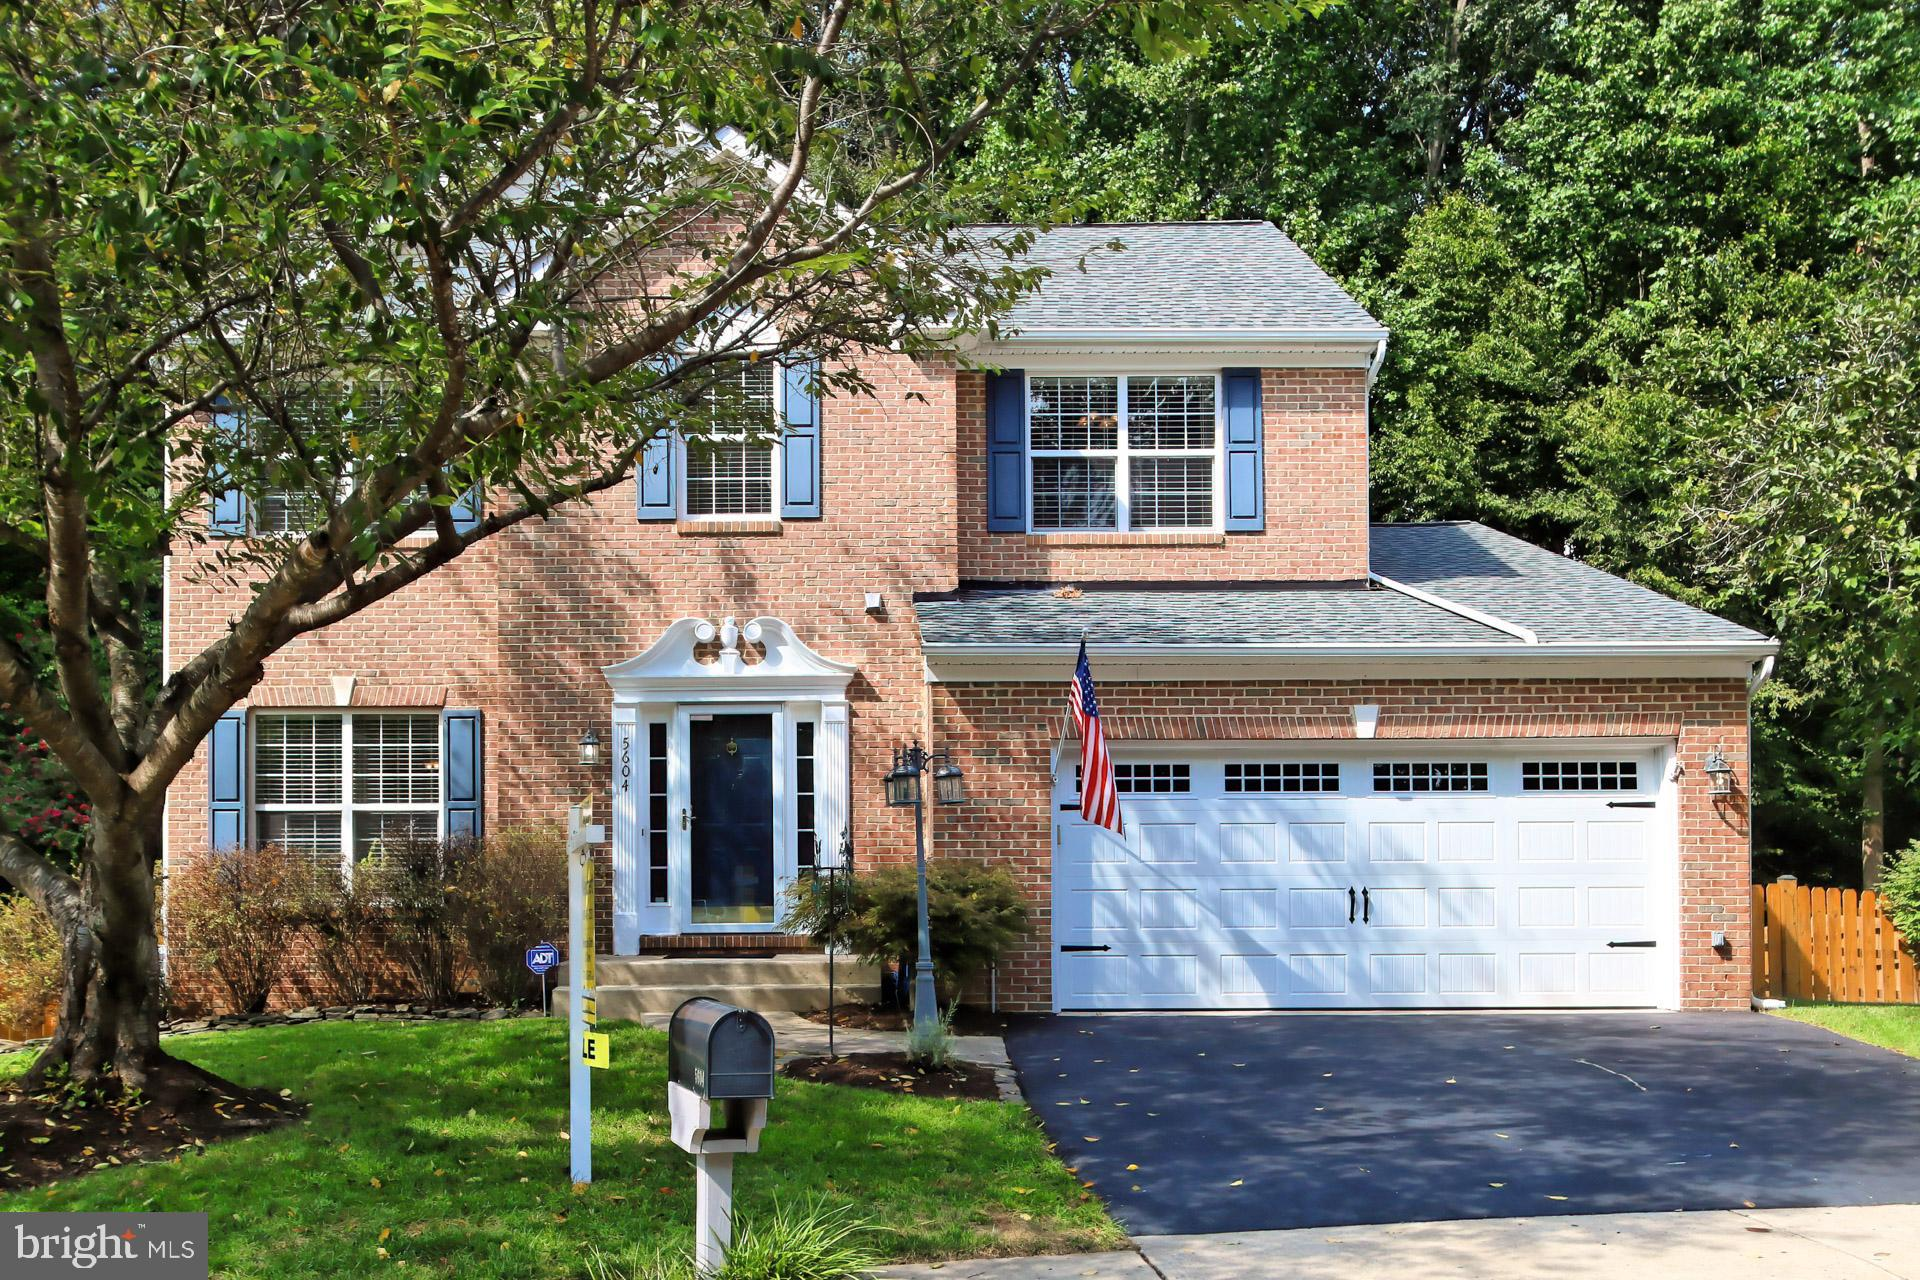 Elegant, brick-front colonial nestled on a quiet cul-de-sac in the highly sought-after community of Ashland. Wonderful eat-in kitchen with white 42-inch cabinets, black appliances, granite counters, an island/small breakfast bar, pantry, plus a convenient desk area. The large adjoining family room features a gas fireplace ready for those chilly evenings. Refinished hardwood floors throughout the main level and crown molding in the family room, living room and formal, separate dining room. The entire home has been freshly painted within the past few years, with many rooms just painted. The main level also features a cheerful laundry area with storage cabinets, and a remodeled powder room. The upper level consists of 4 bedrooms including the primary suite featuring soaring vaulted ceilings a large walk-in closet and a gorgeous, completely remodeled bath. The luxurious, spa-like primary bathroom has a double vanity with marble top, recessed, picture frame medicine cabinets, a large soaking tub and a beautiful shower with frameless shower doors. The 3 secondary bedrooms share another gorgeous, completely updated bath. The lower level has a large, finished recreation room, tons of storage space and a rough-in for a full bath. New roof in 2016. A new asphalt driveway leads to the oversized, 2 car garage featuring a new, insulated garage door, overhead racks and lots of built-in shelving. Outside, the sundeck overlooks the large, fully fenced yard backing to the Ashland Conservancy (wooded area with no homes). Across the cul-de-sac is a path leading to the community pool and clubhouse (a 2-minute walk). The Ashland community also features tennis and basketball courts, a fitness center, and a great kid's playground. Conveniently located minutes from major commuter routes, shops, restaurants and award-winning schools. Welcome home!